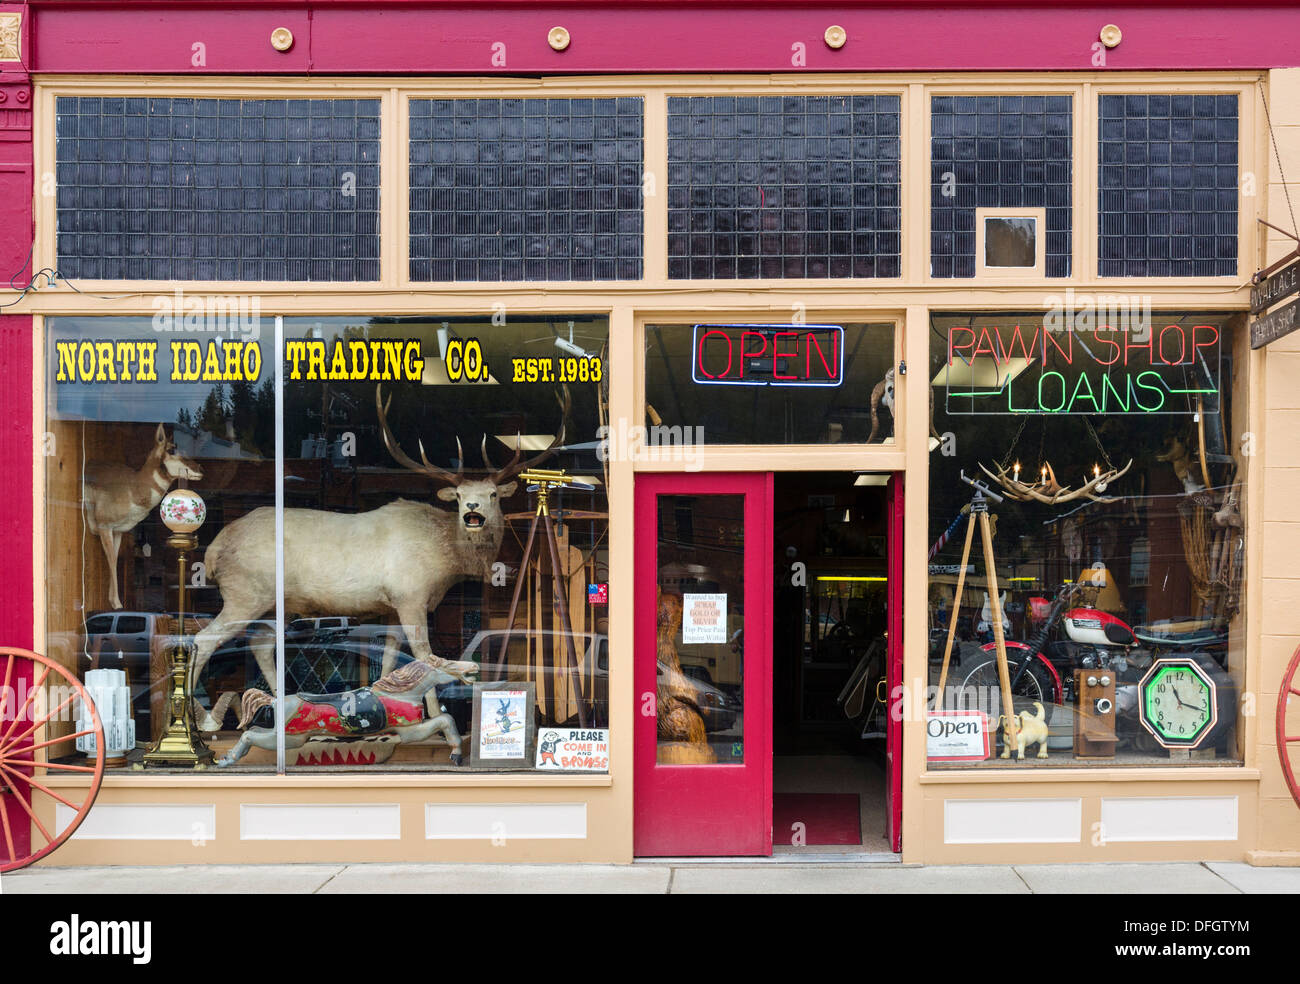 Pawn shop on Bank Street (Main Street) in the historic old silver mining town of Wallace, Idaho, USA - Stock Image